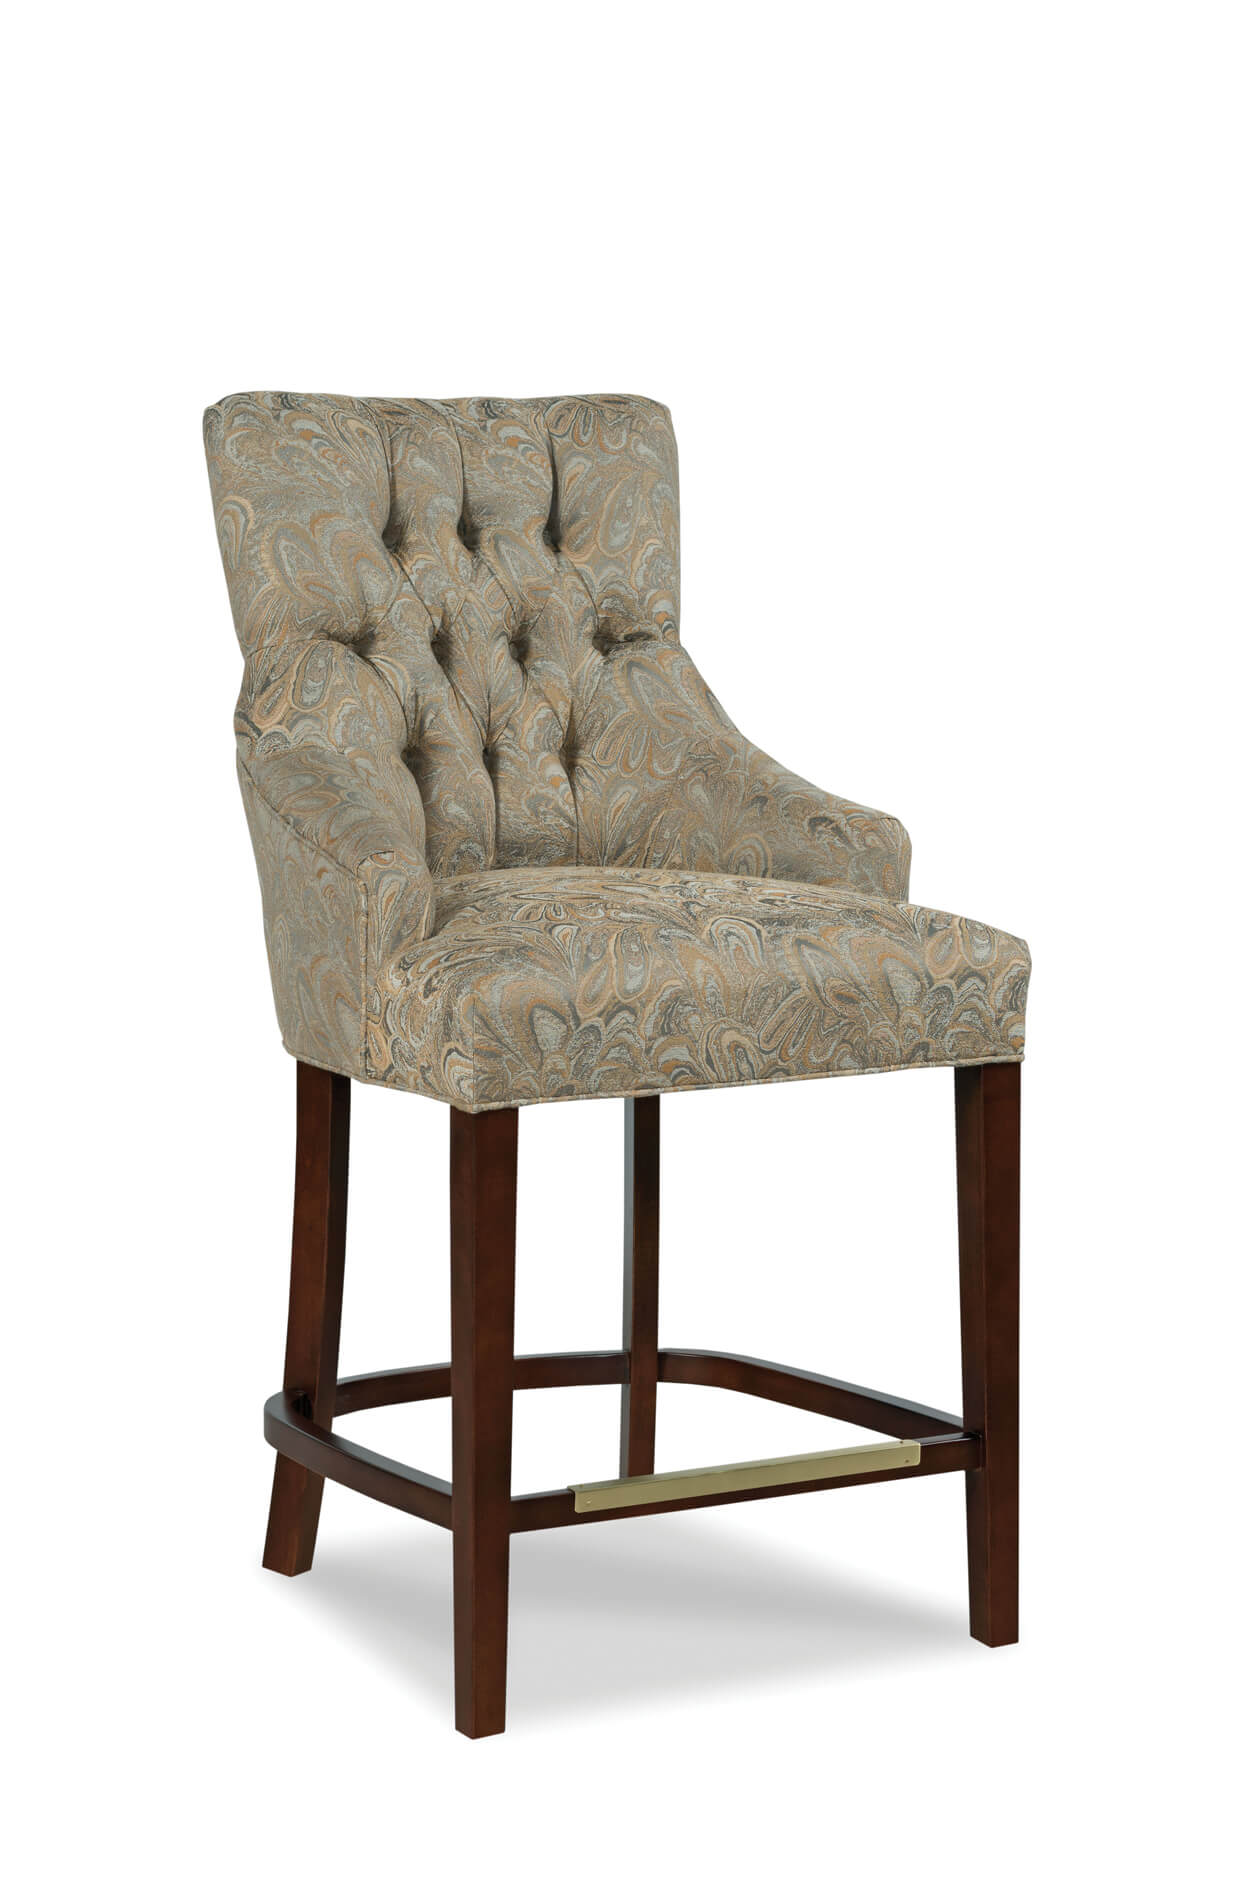 Fairfield Chairs Clancy Upholstered Wooden Stool With Arms